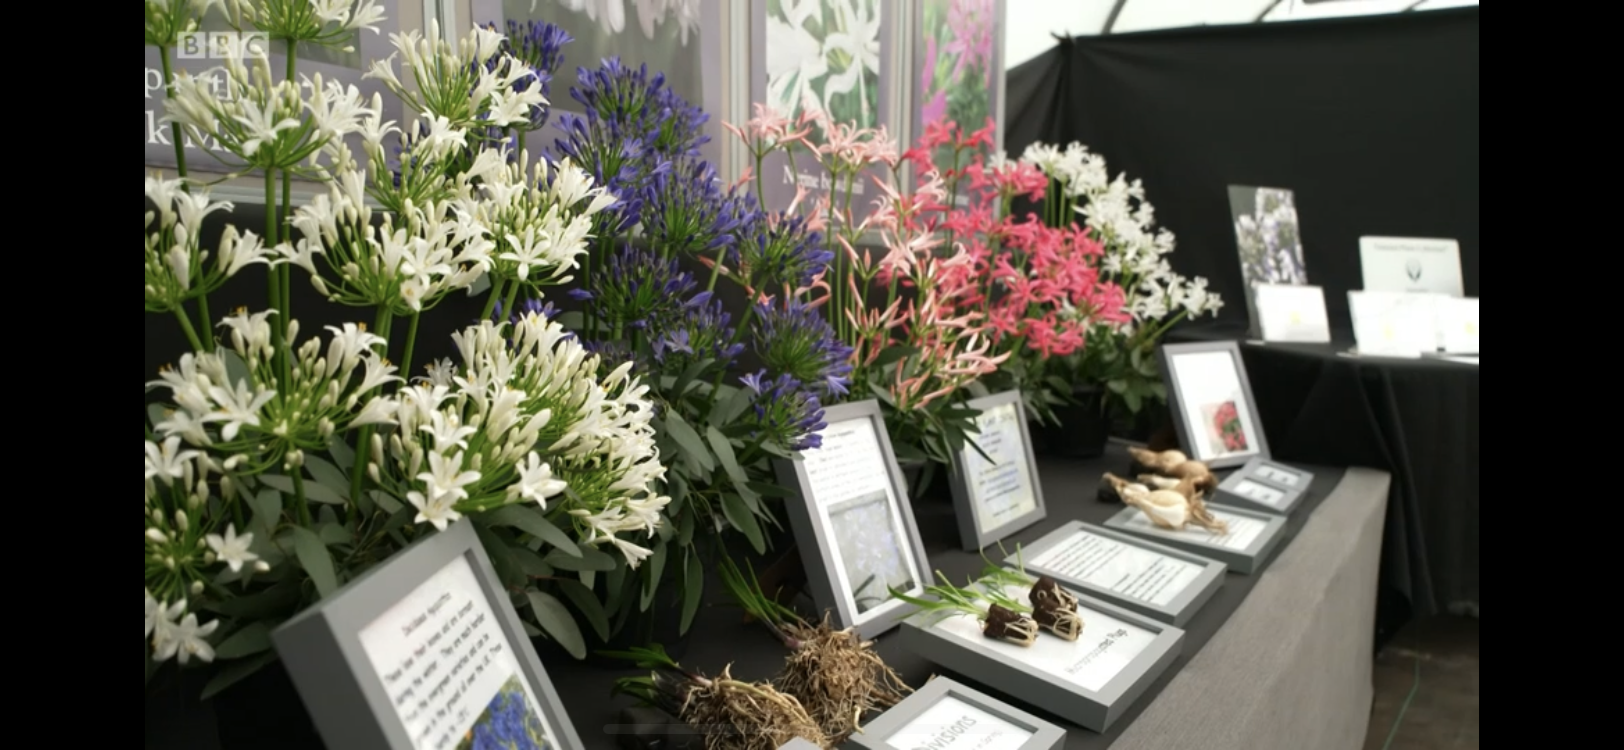 Another beautiful and informative display of Nerines and Agapanthus.